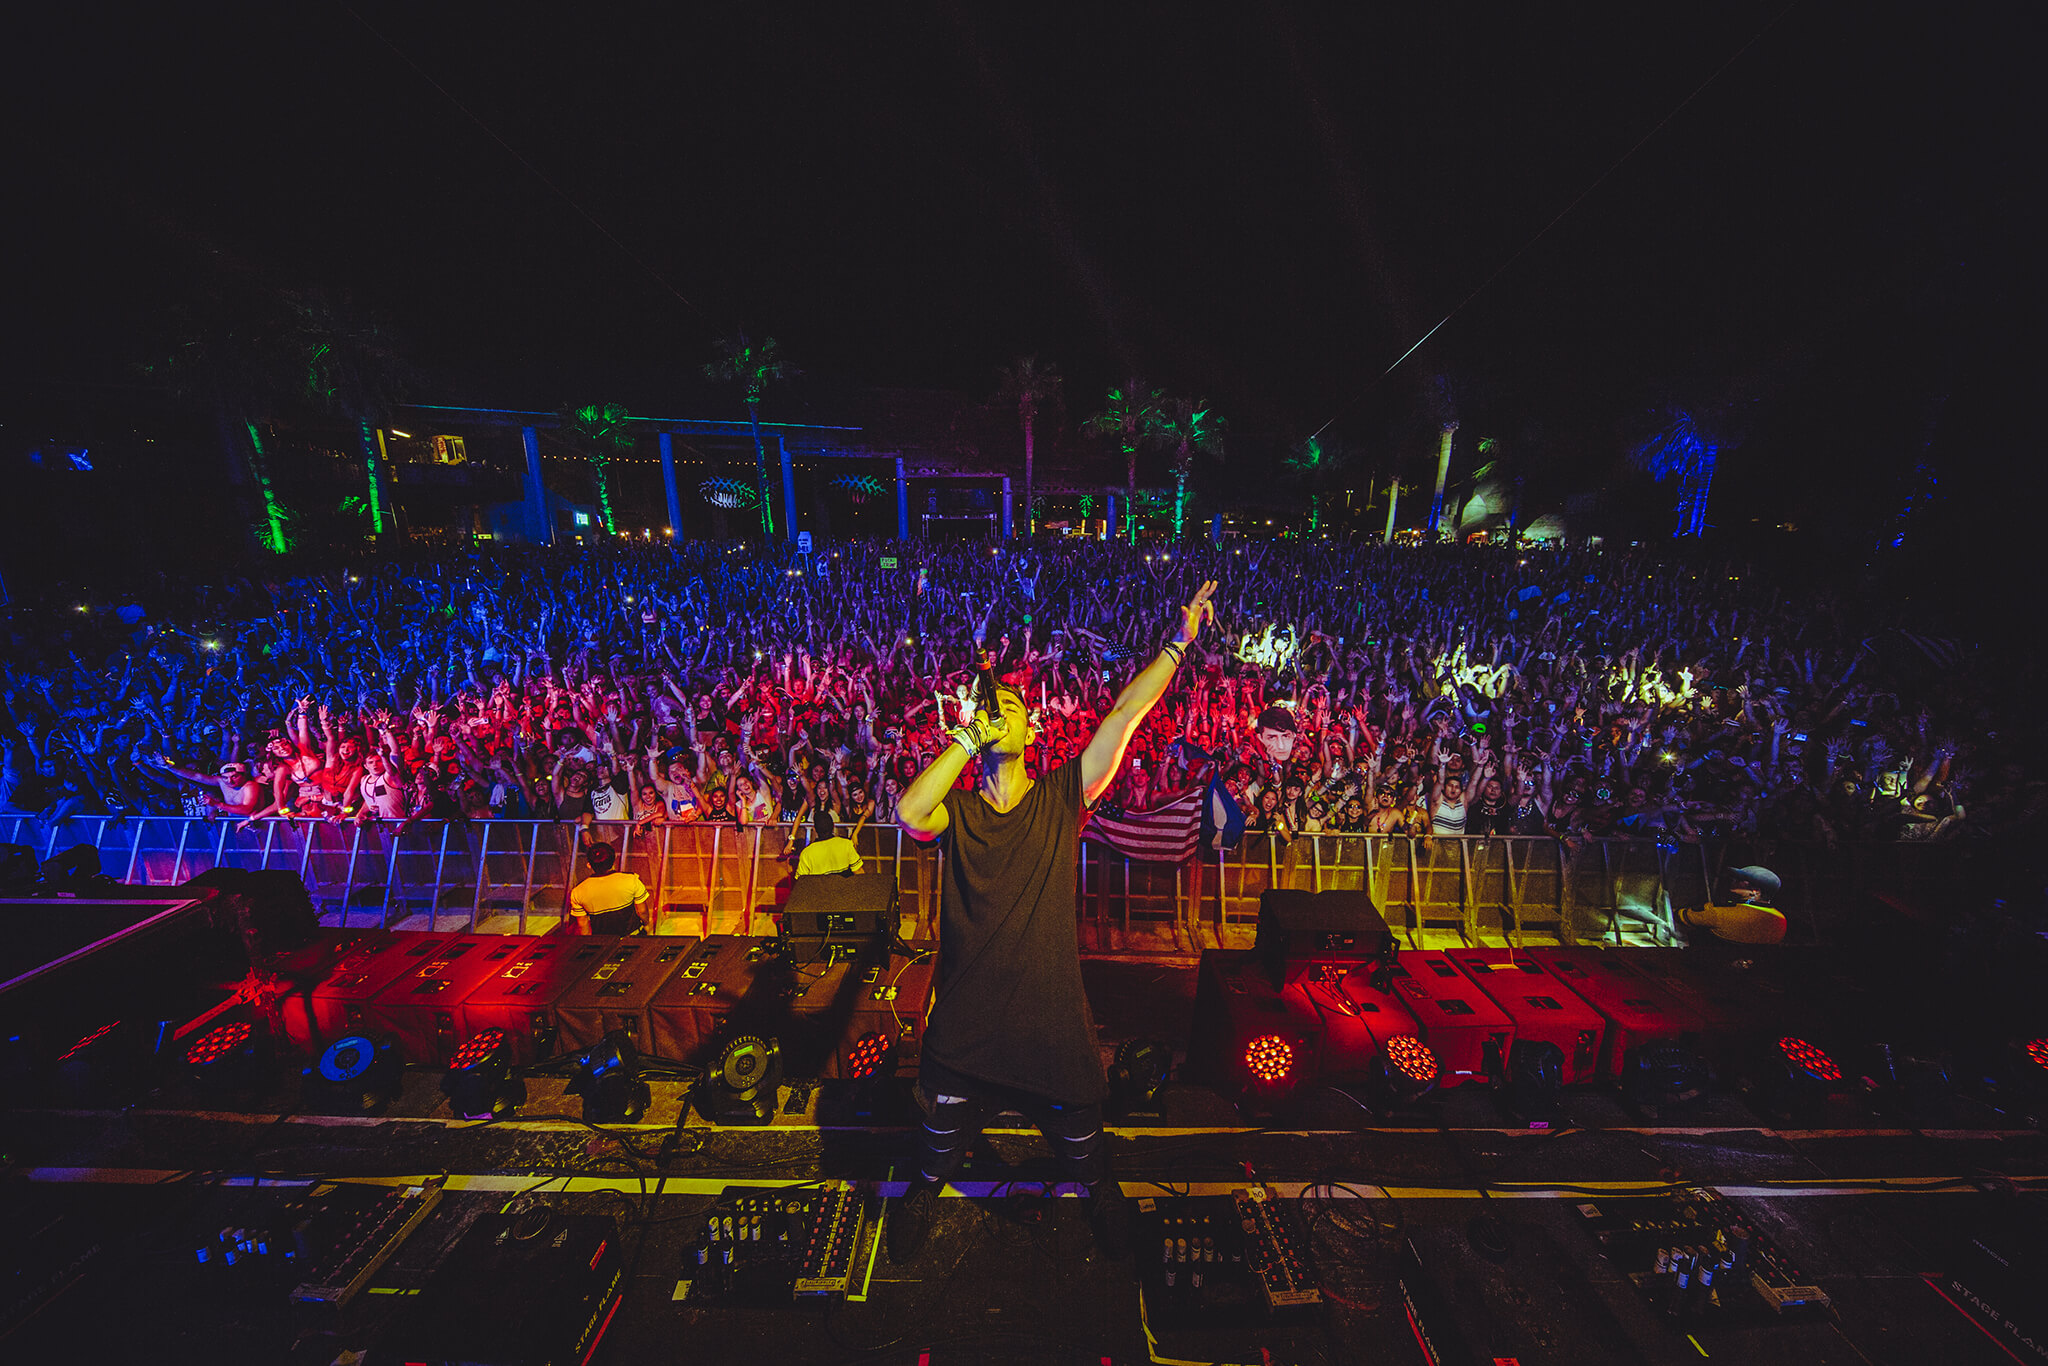 3lau live at ultimate music experience